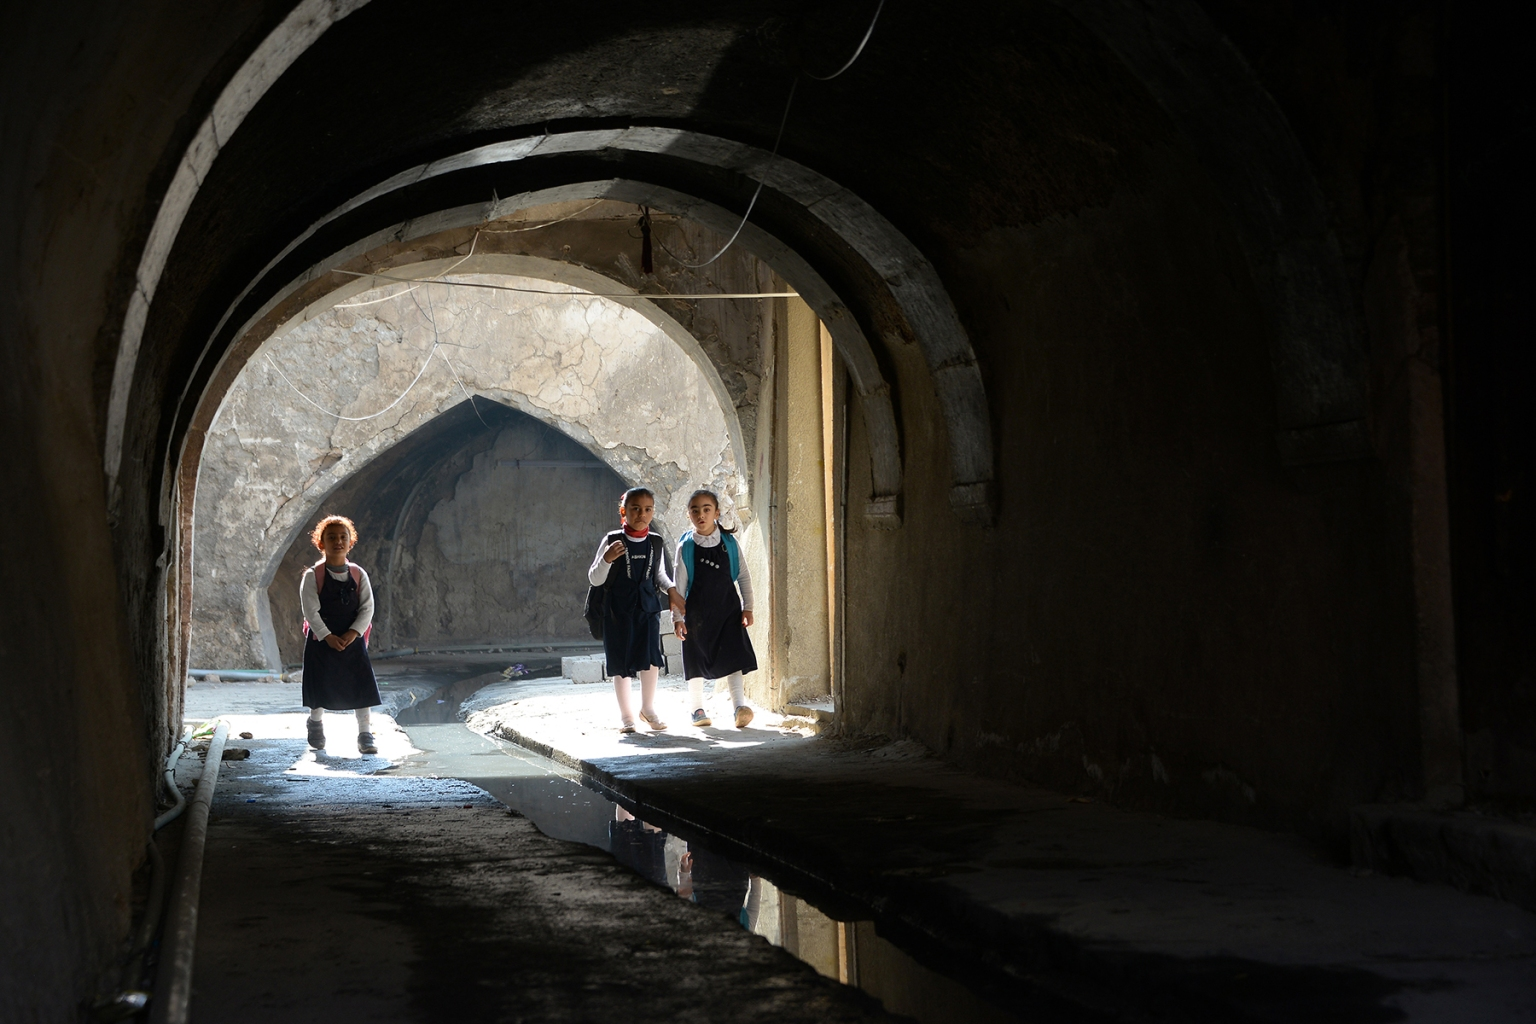 Iraqi children walk through the arcades of the old city in Mosul, the capital of Iraq's northern Nineveh province, on Nov. 12. ZAID AL-OBEIDI/AFP/Getty Images